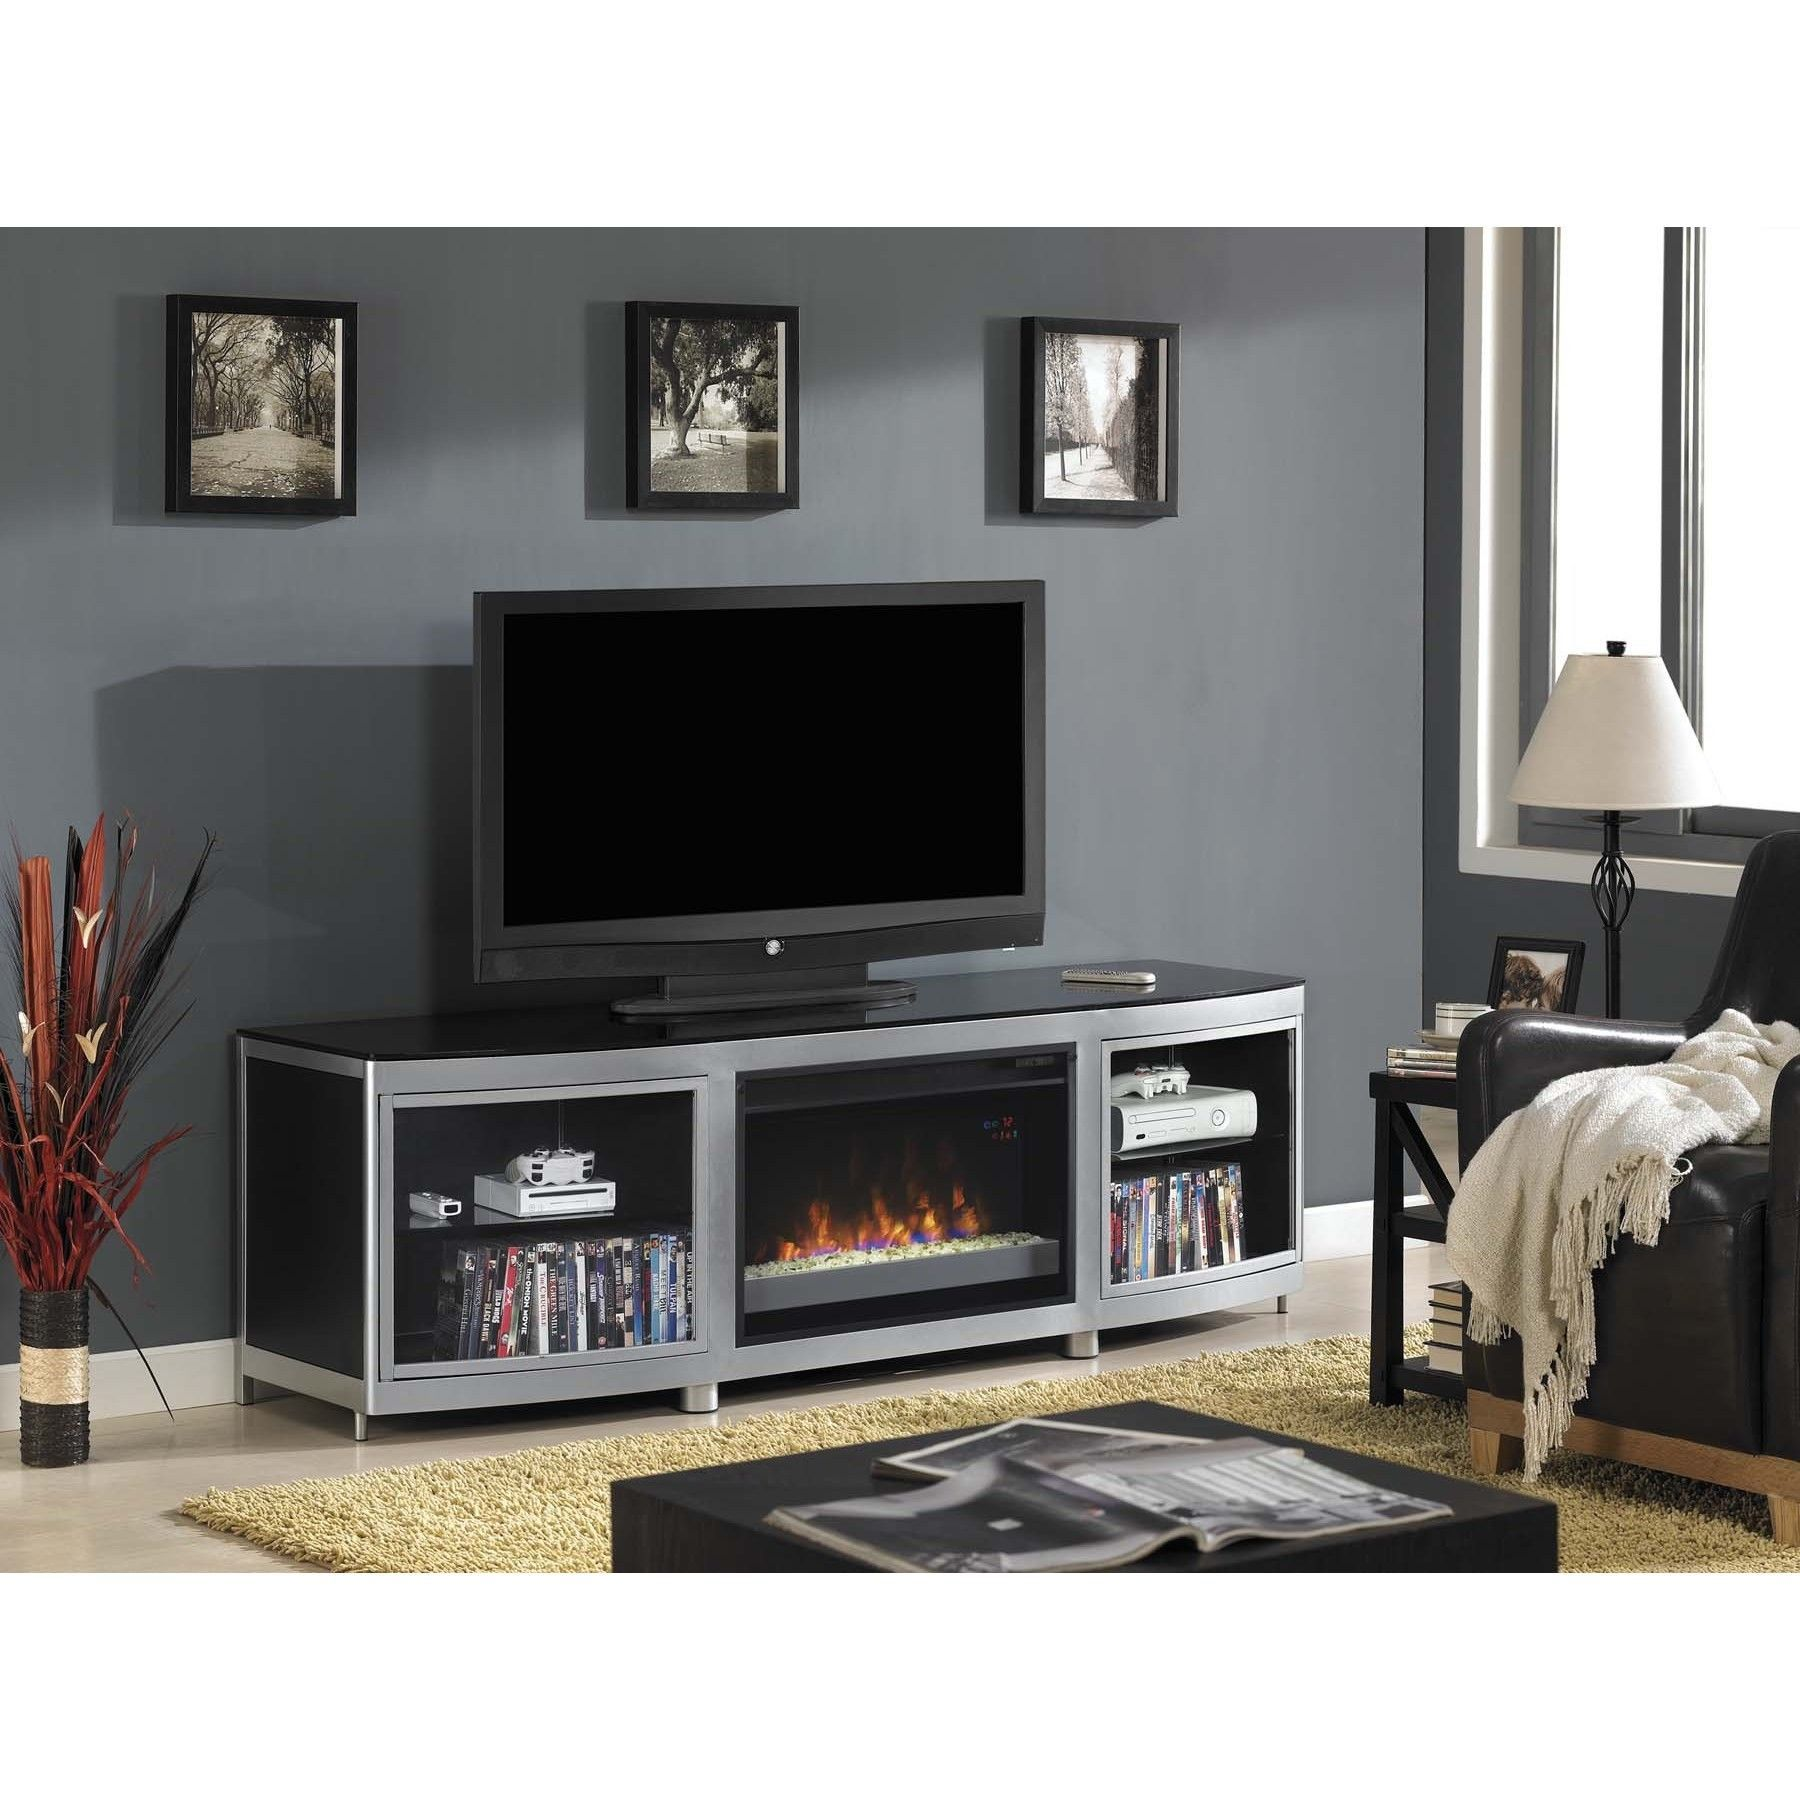 Star Gotham Tv Stand For Tvs Up To 80 Inch With 26 Inch Contemporary